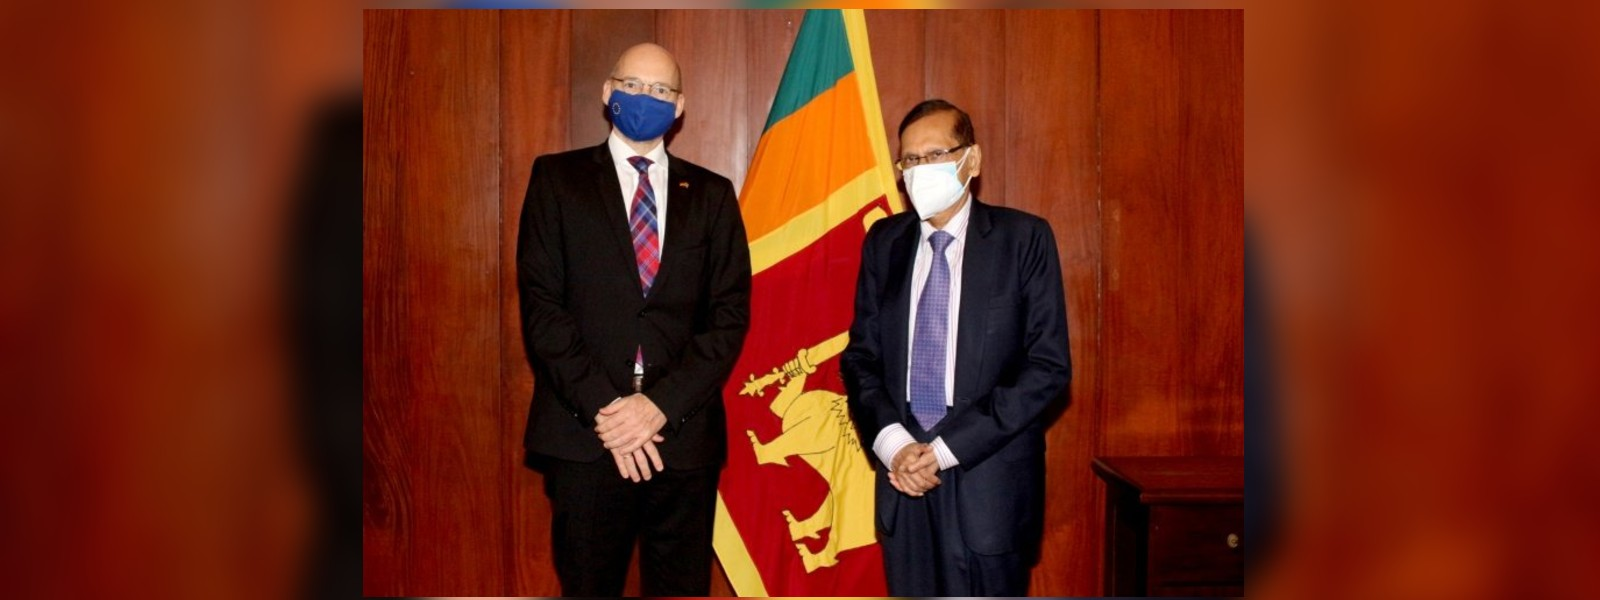 Foreign Minister invites Germany to optimize investment in SL